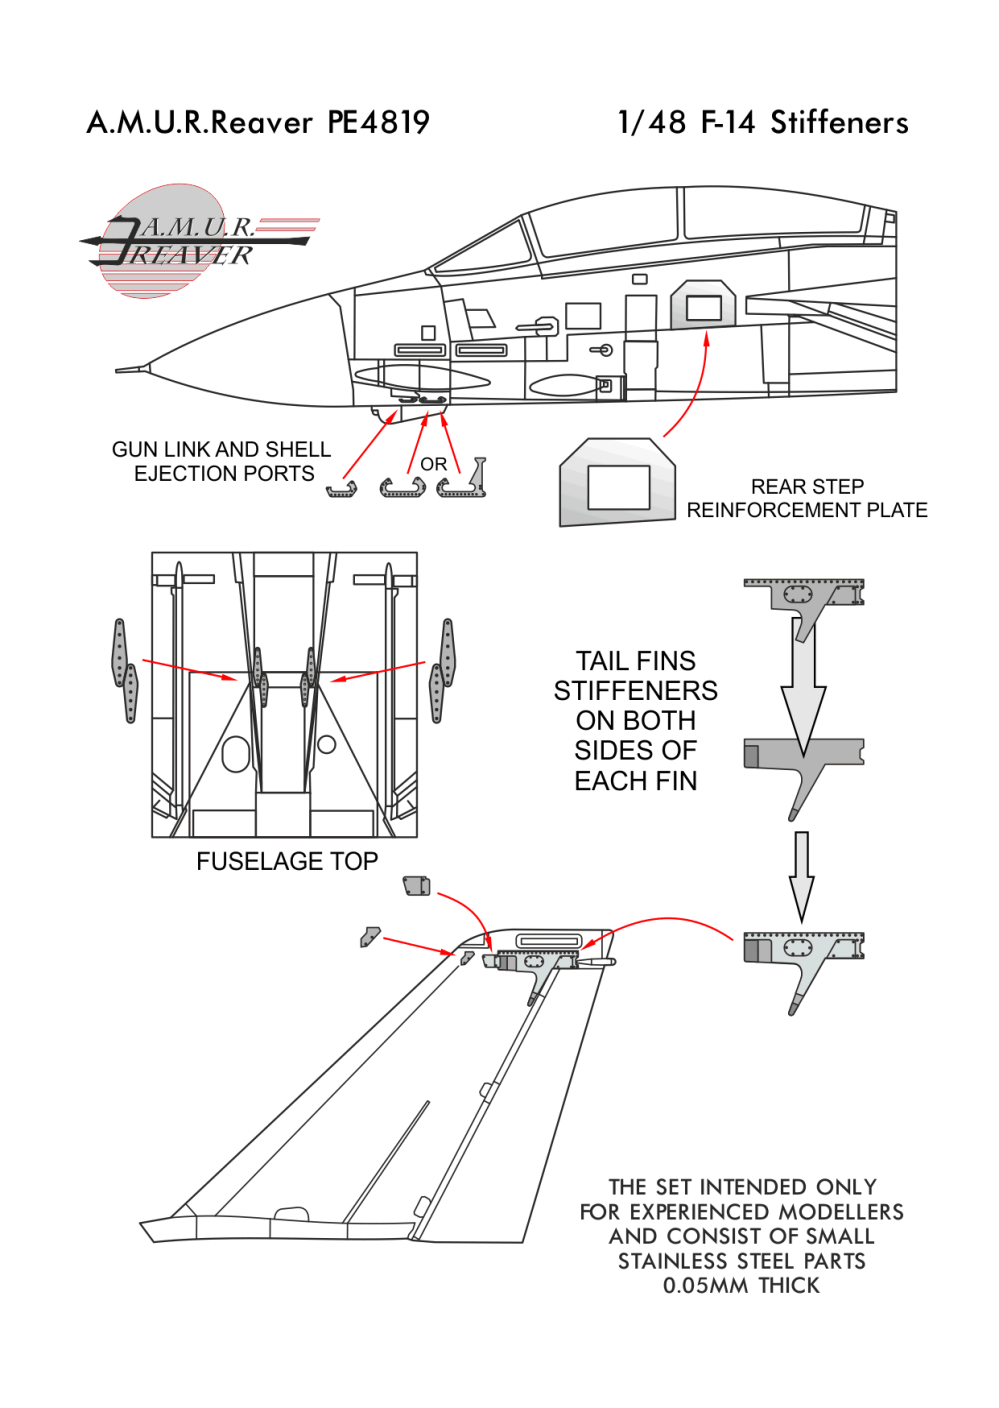 medium resolution of set of stiffeners for any model of f 14 tomcat in 1 48